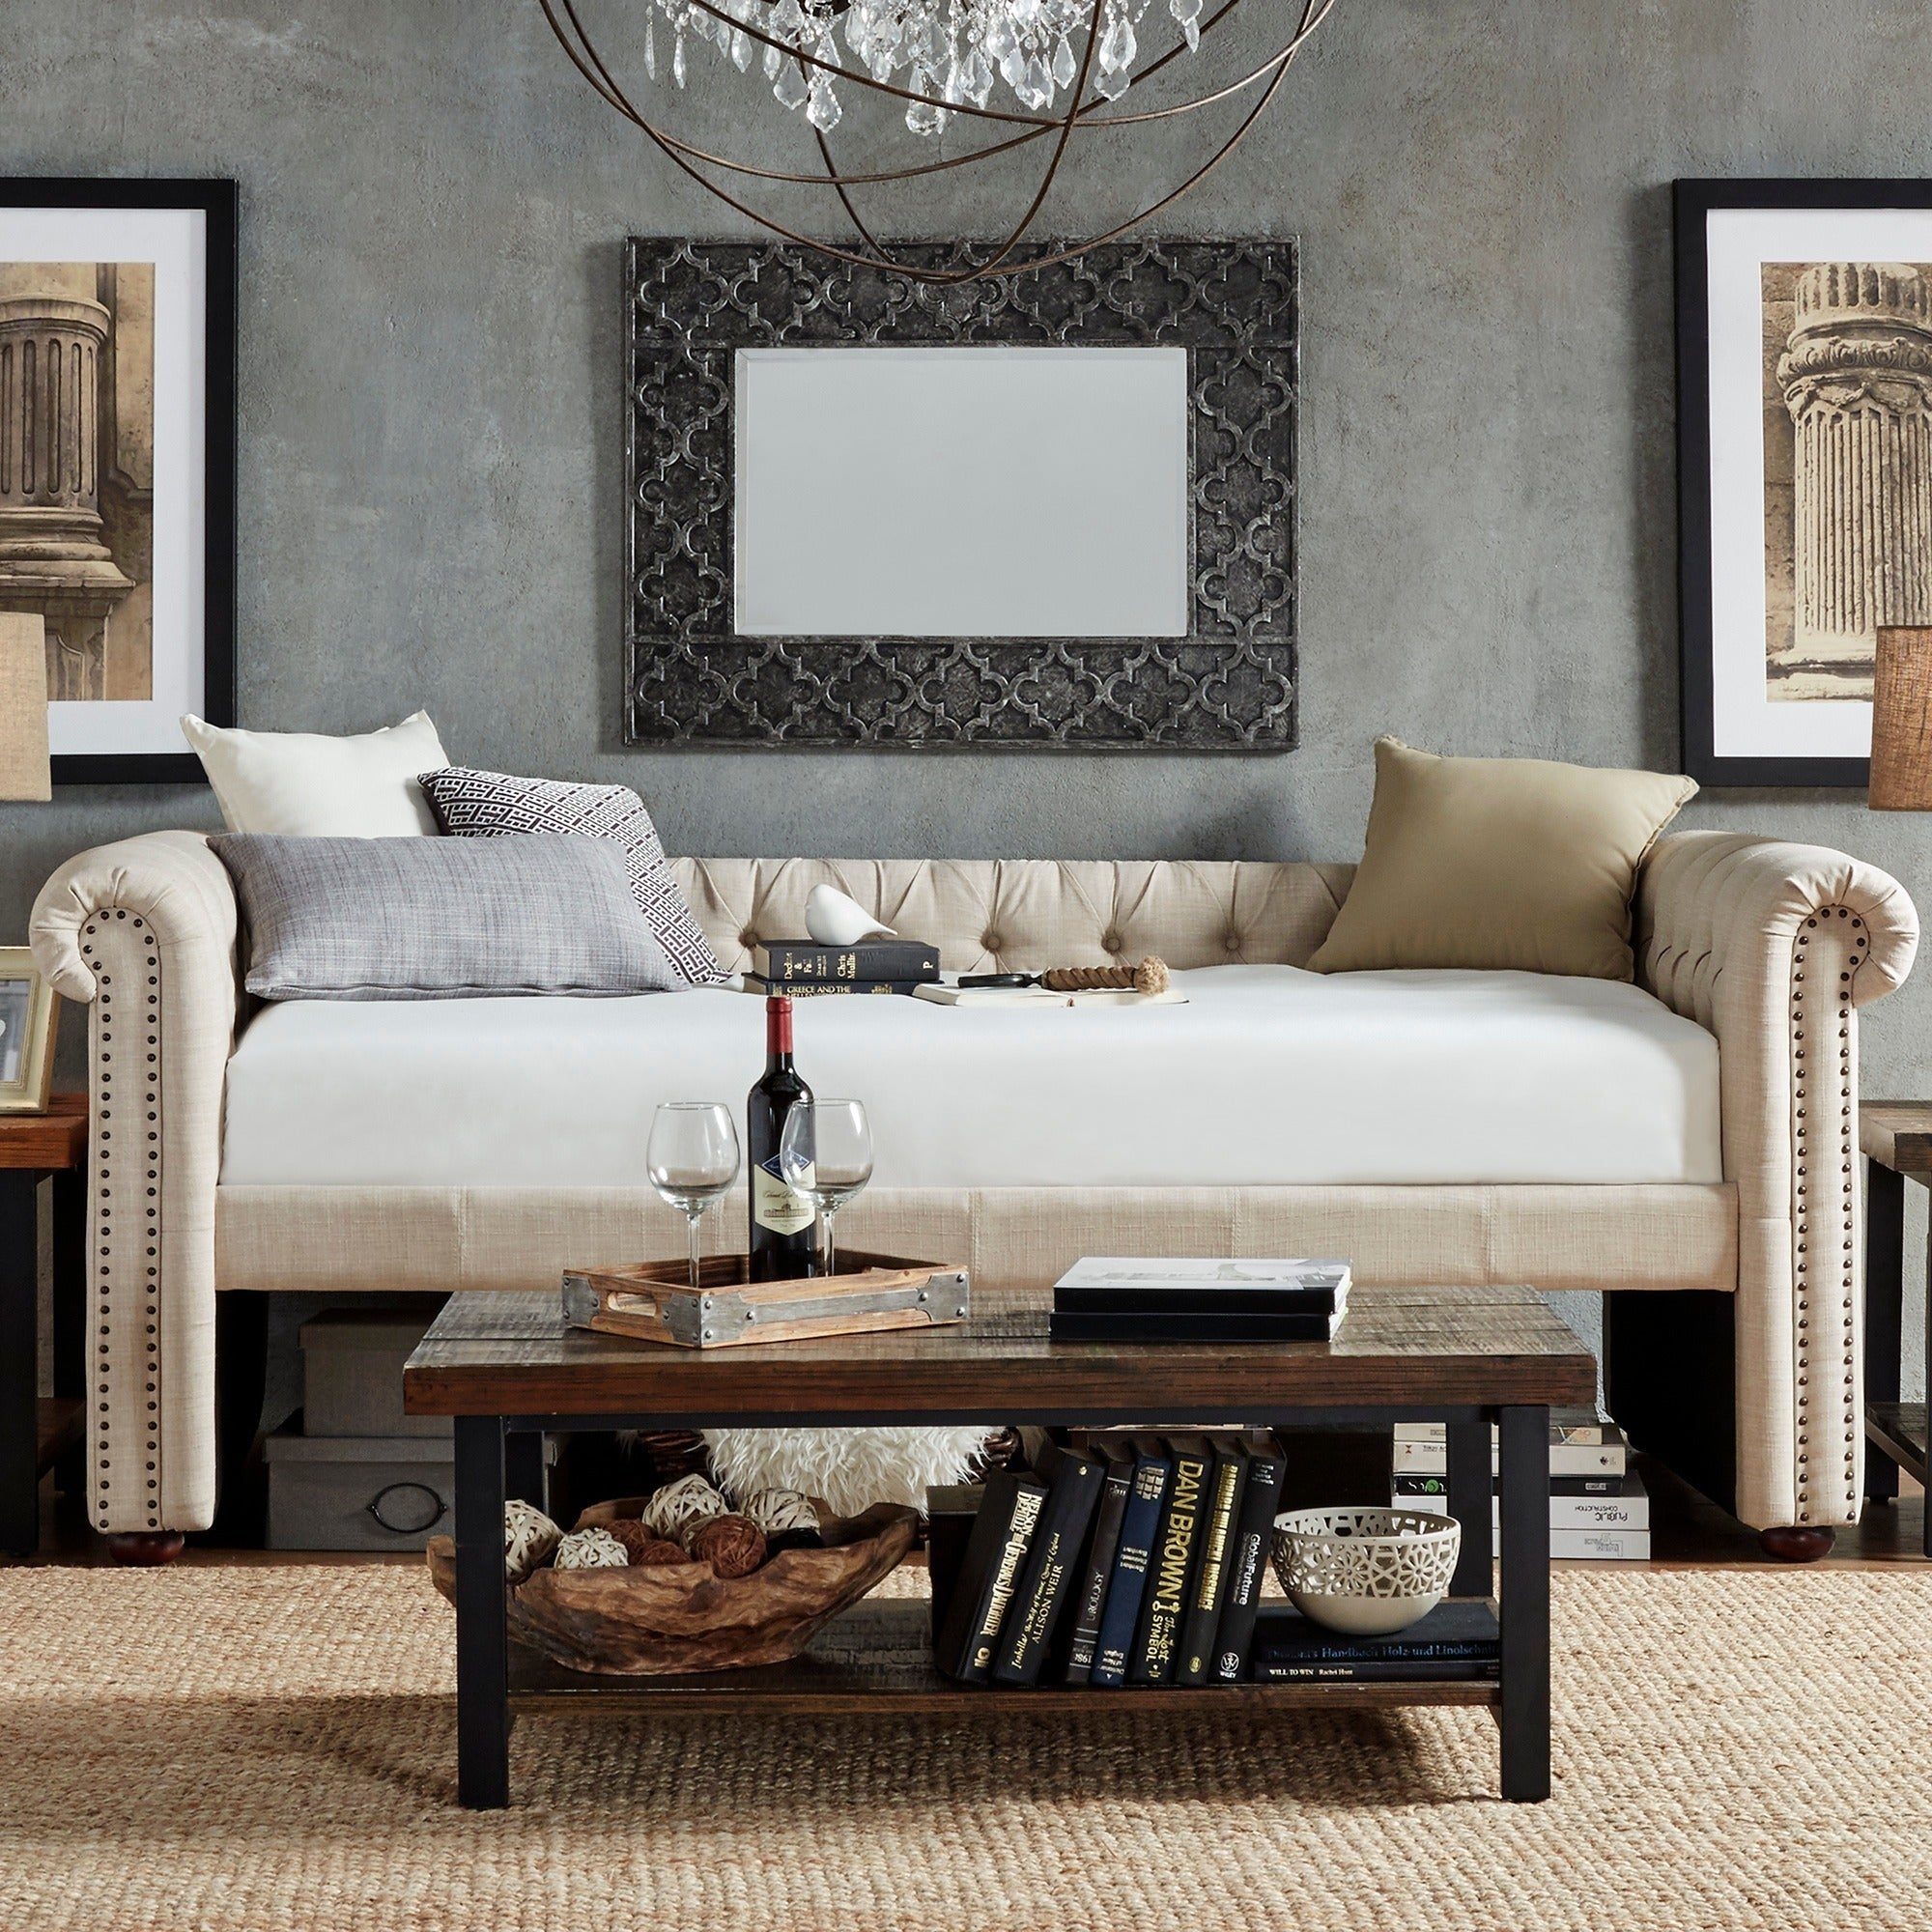 Knightsbridge Tufted Scroll Arm Chesterfield Daybed and T...